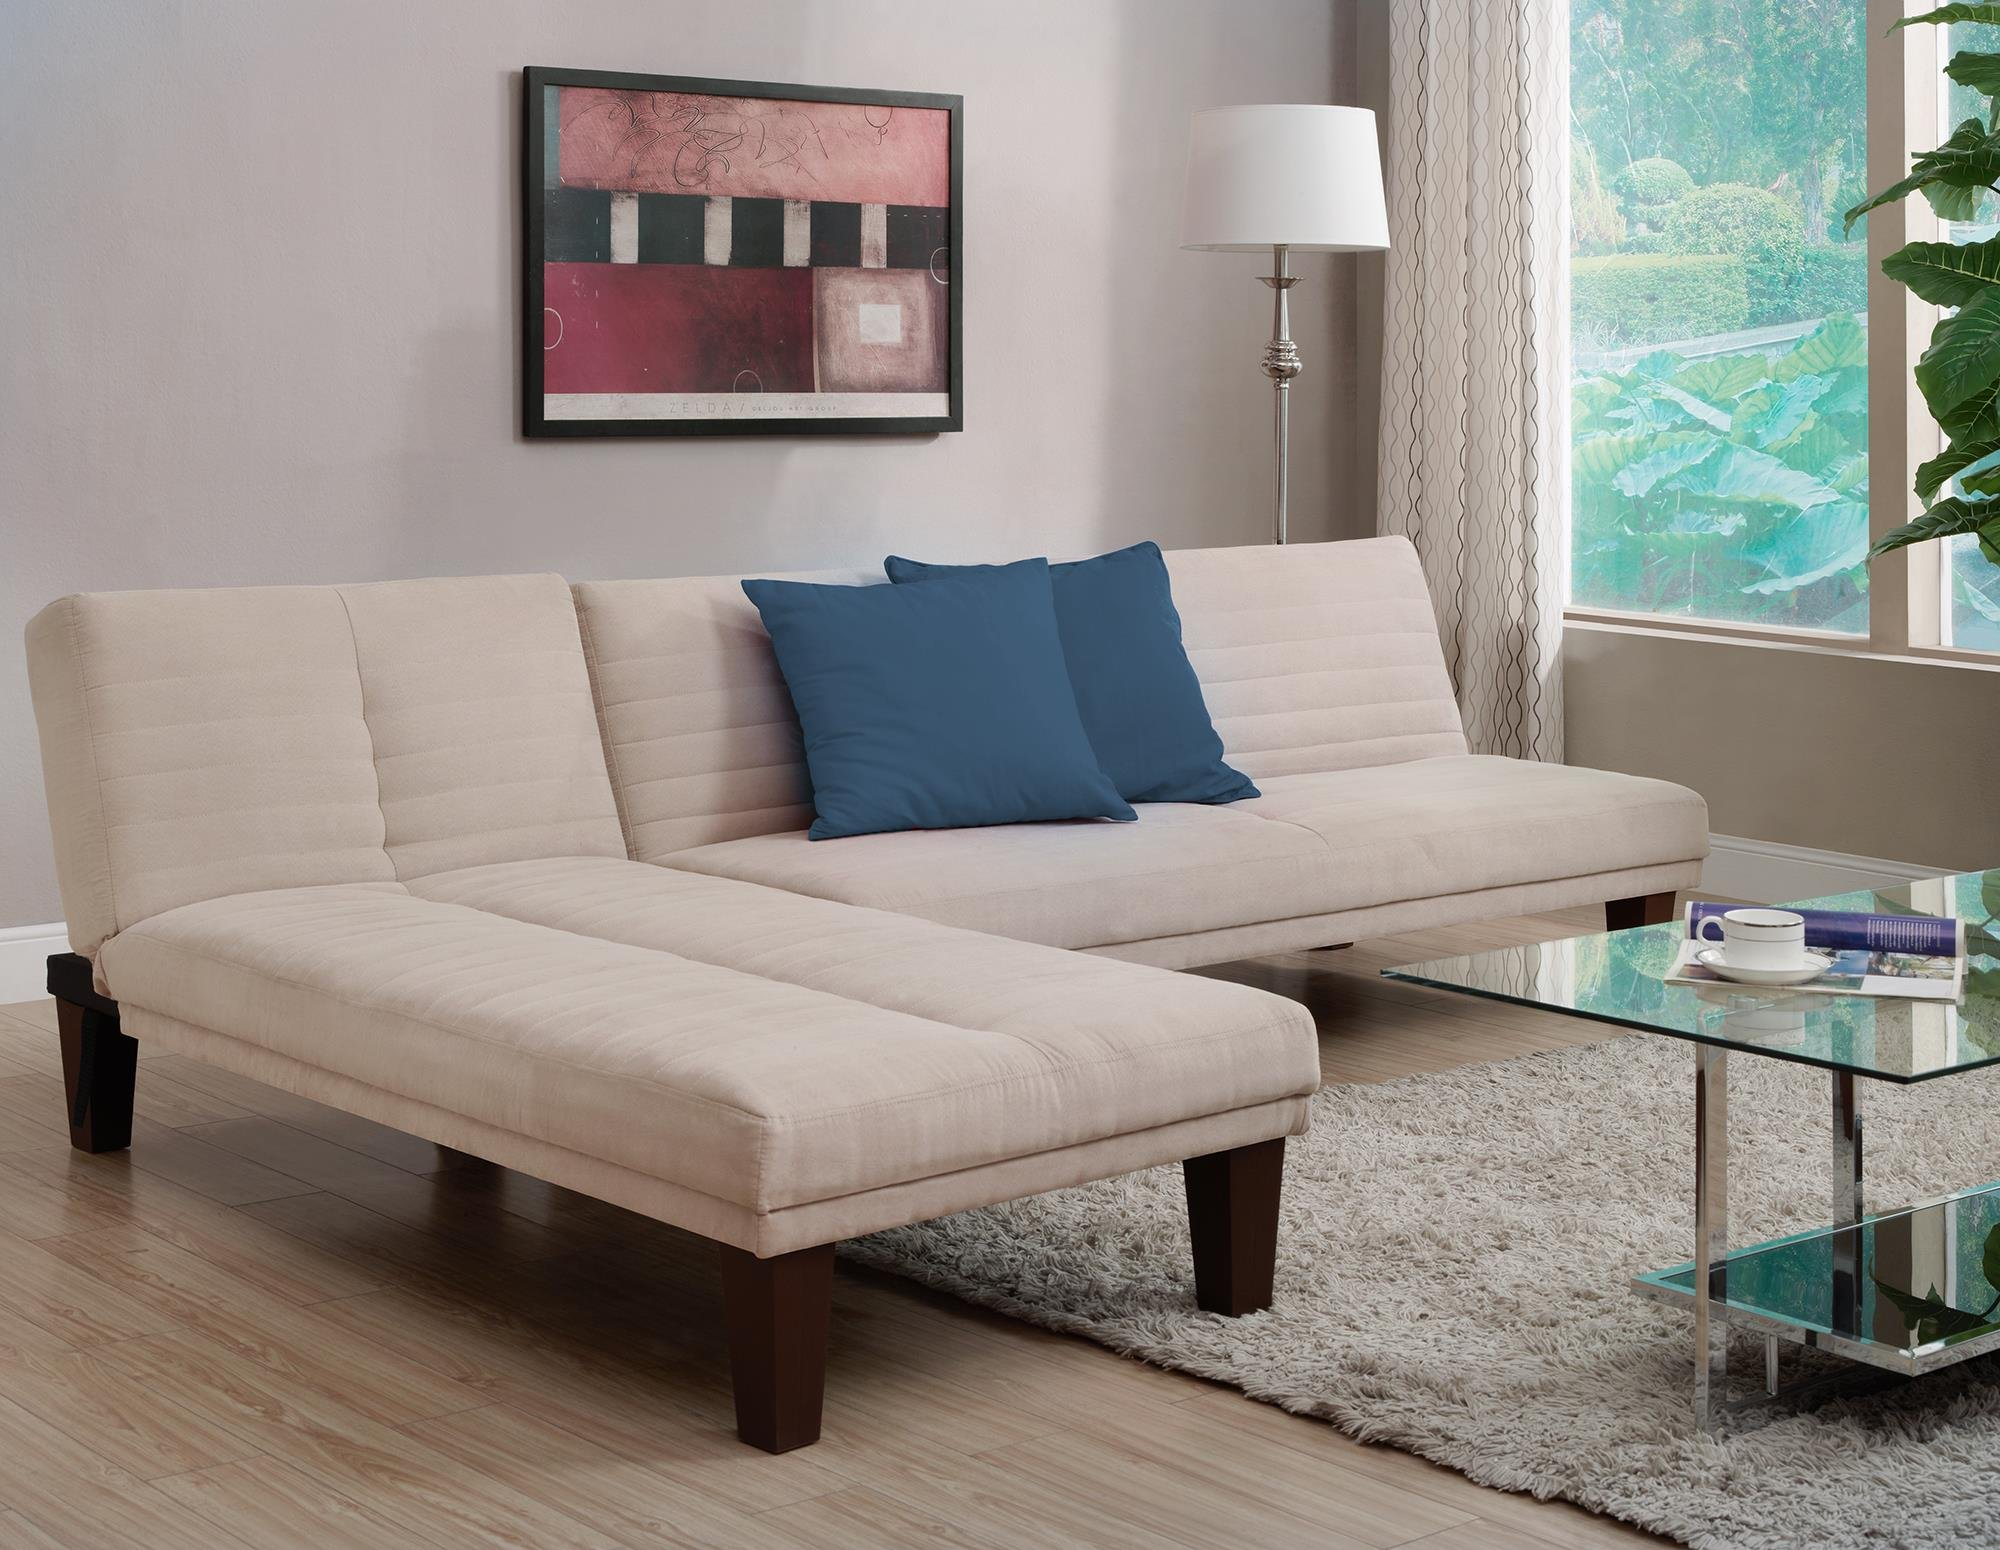 DHP Dillan Convertible Futon Couch Bed with Microfiber Upholstery and Wood Legs - Tan by DHP